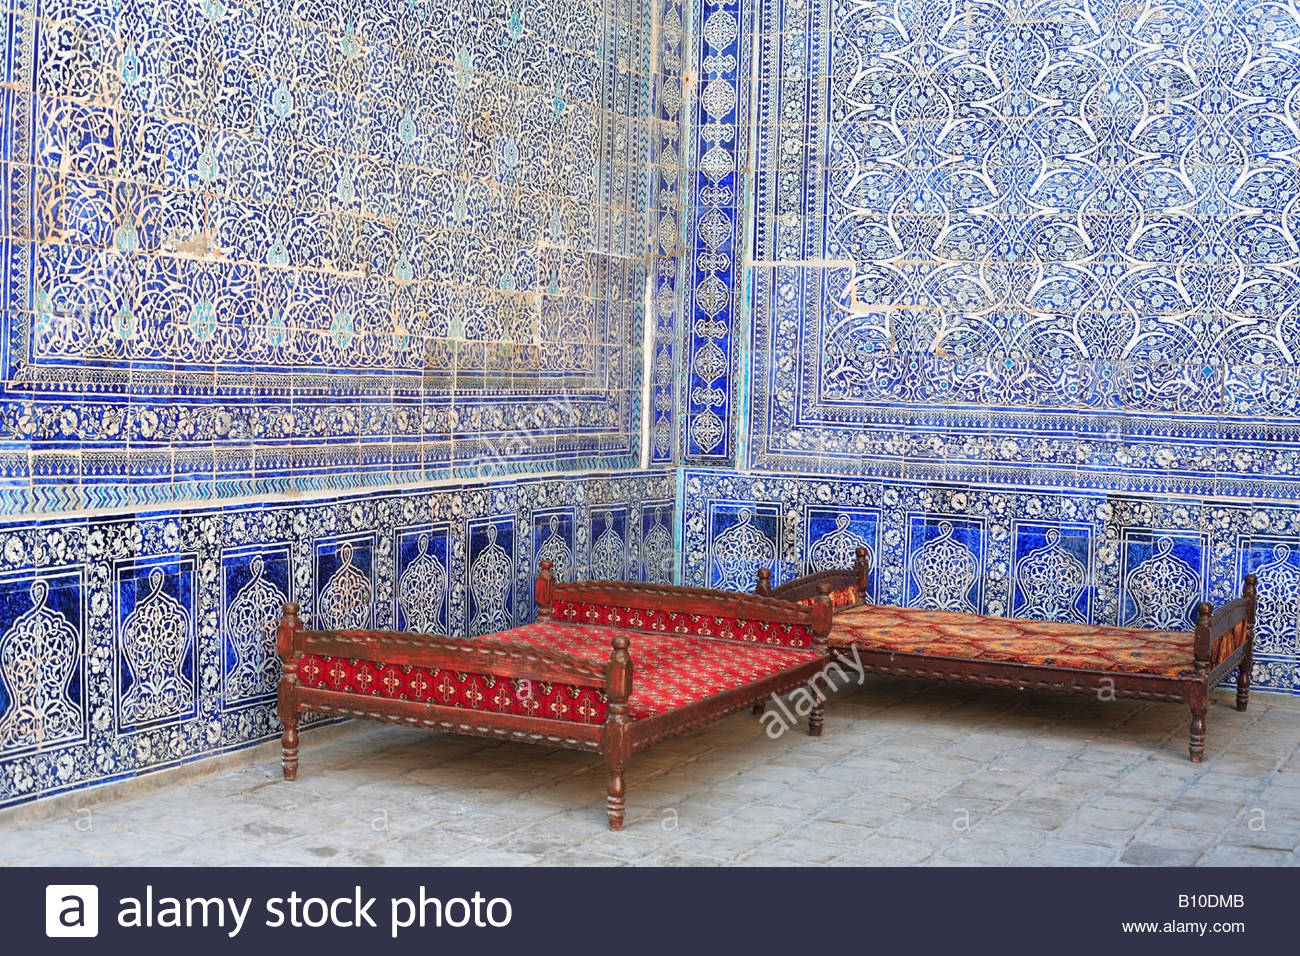 Khan's Palace, Khiva, Uzbekistan Stock Photo